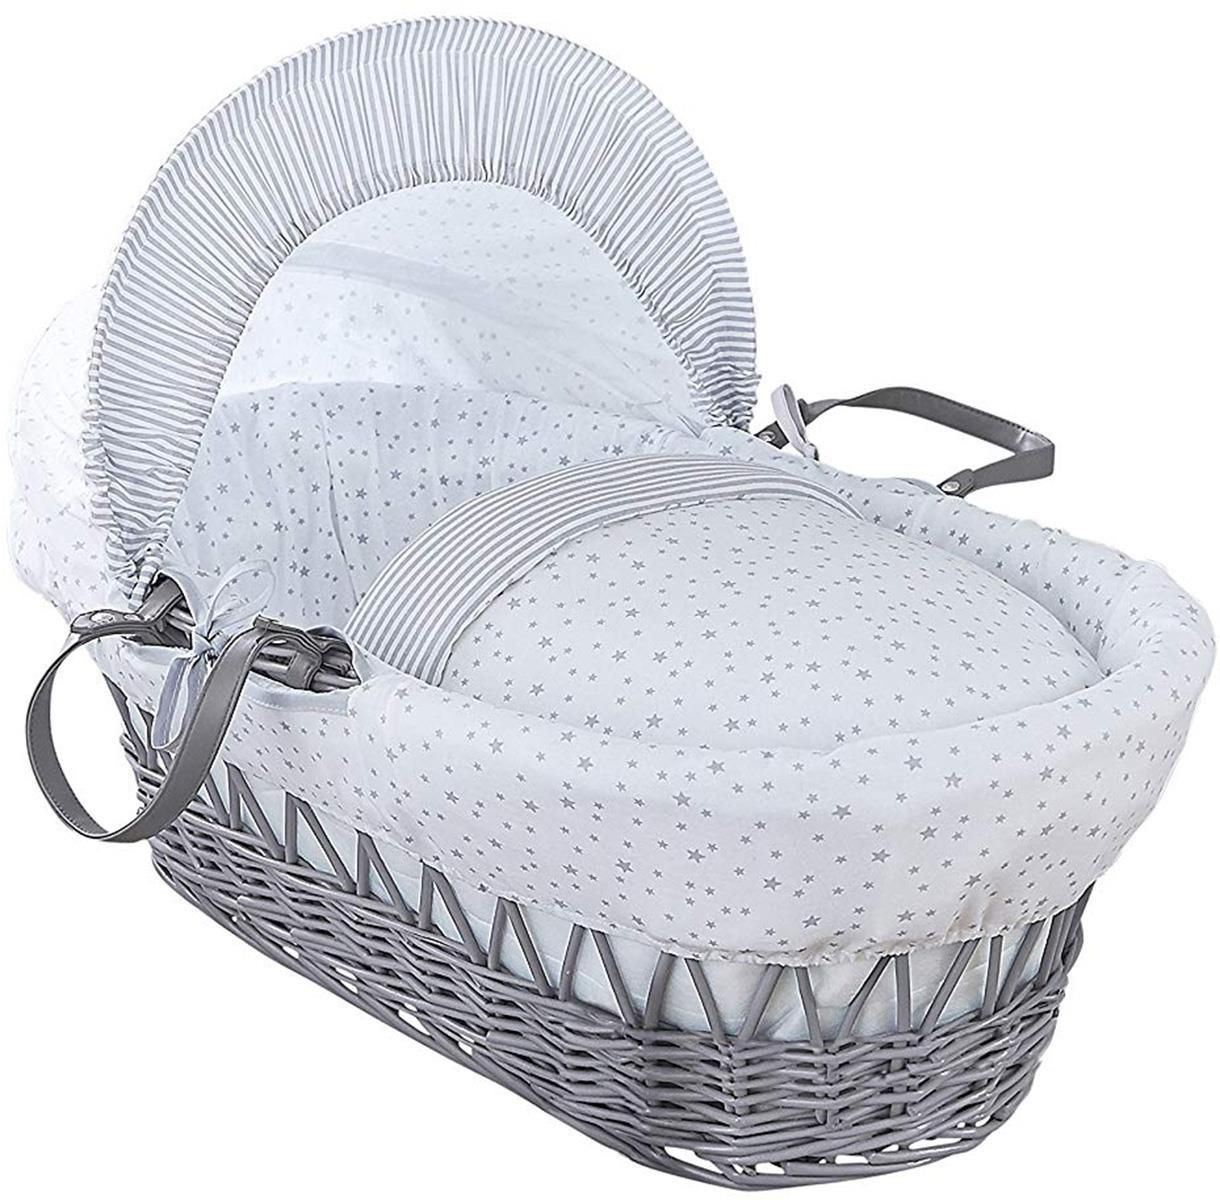 mattress /& adjustable hood Clair de Lune Stars and Stripes White Wicker Moses Basket inc Pink bedding